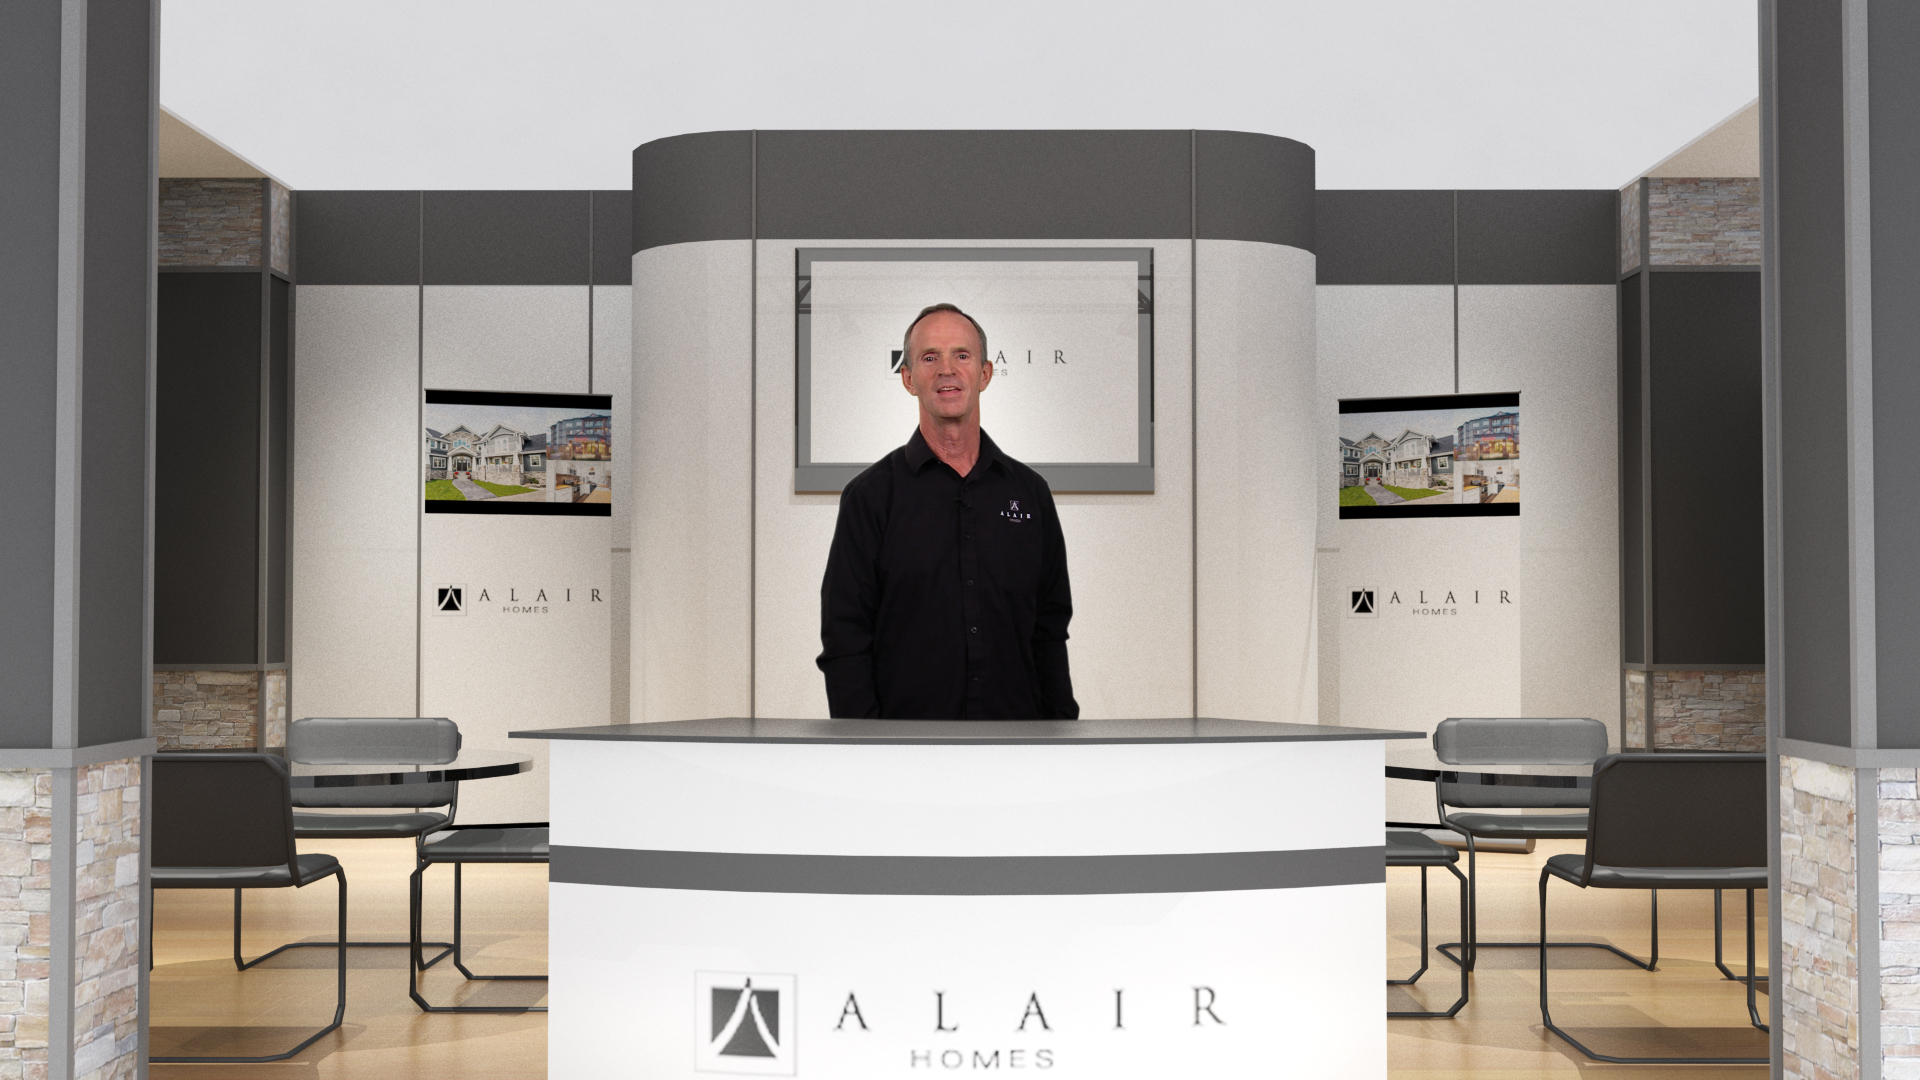 Alair Homes